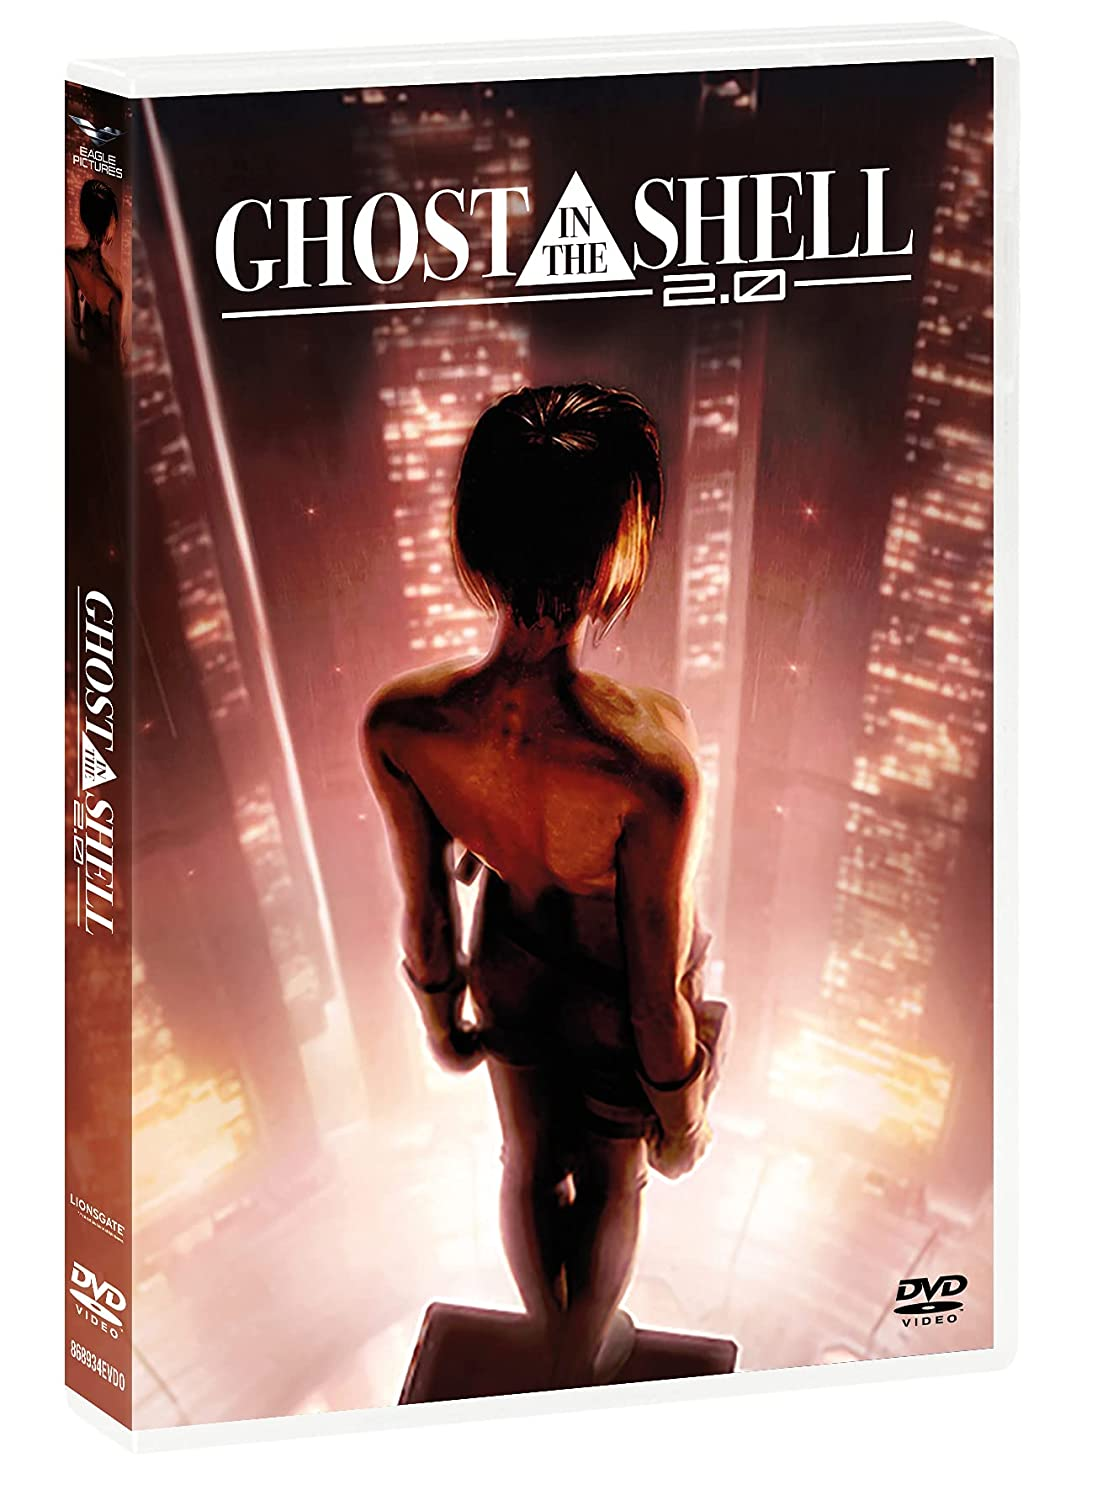 GHOST IN THE SHELL 2.0 (DVD)